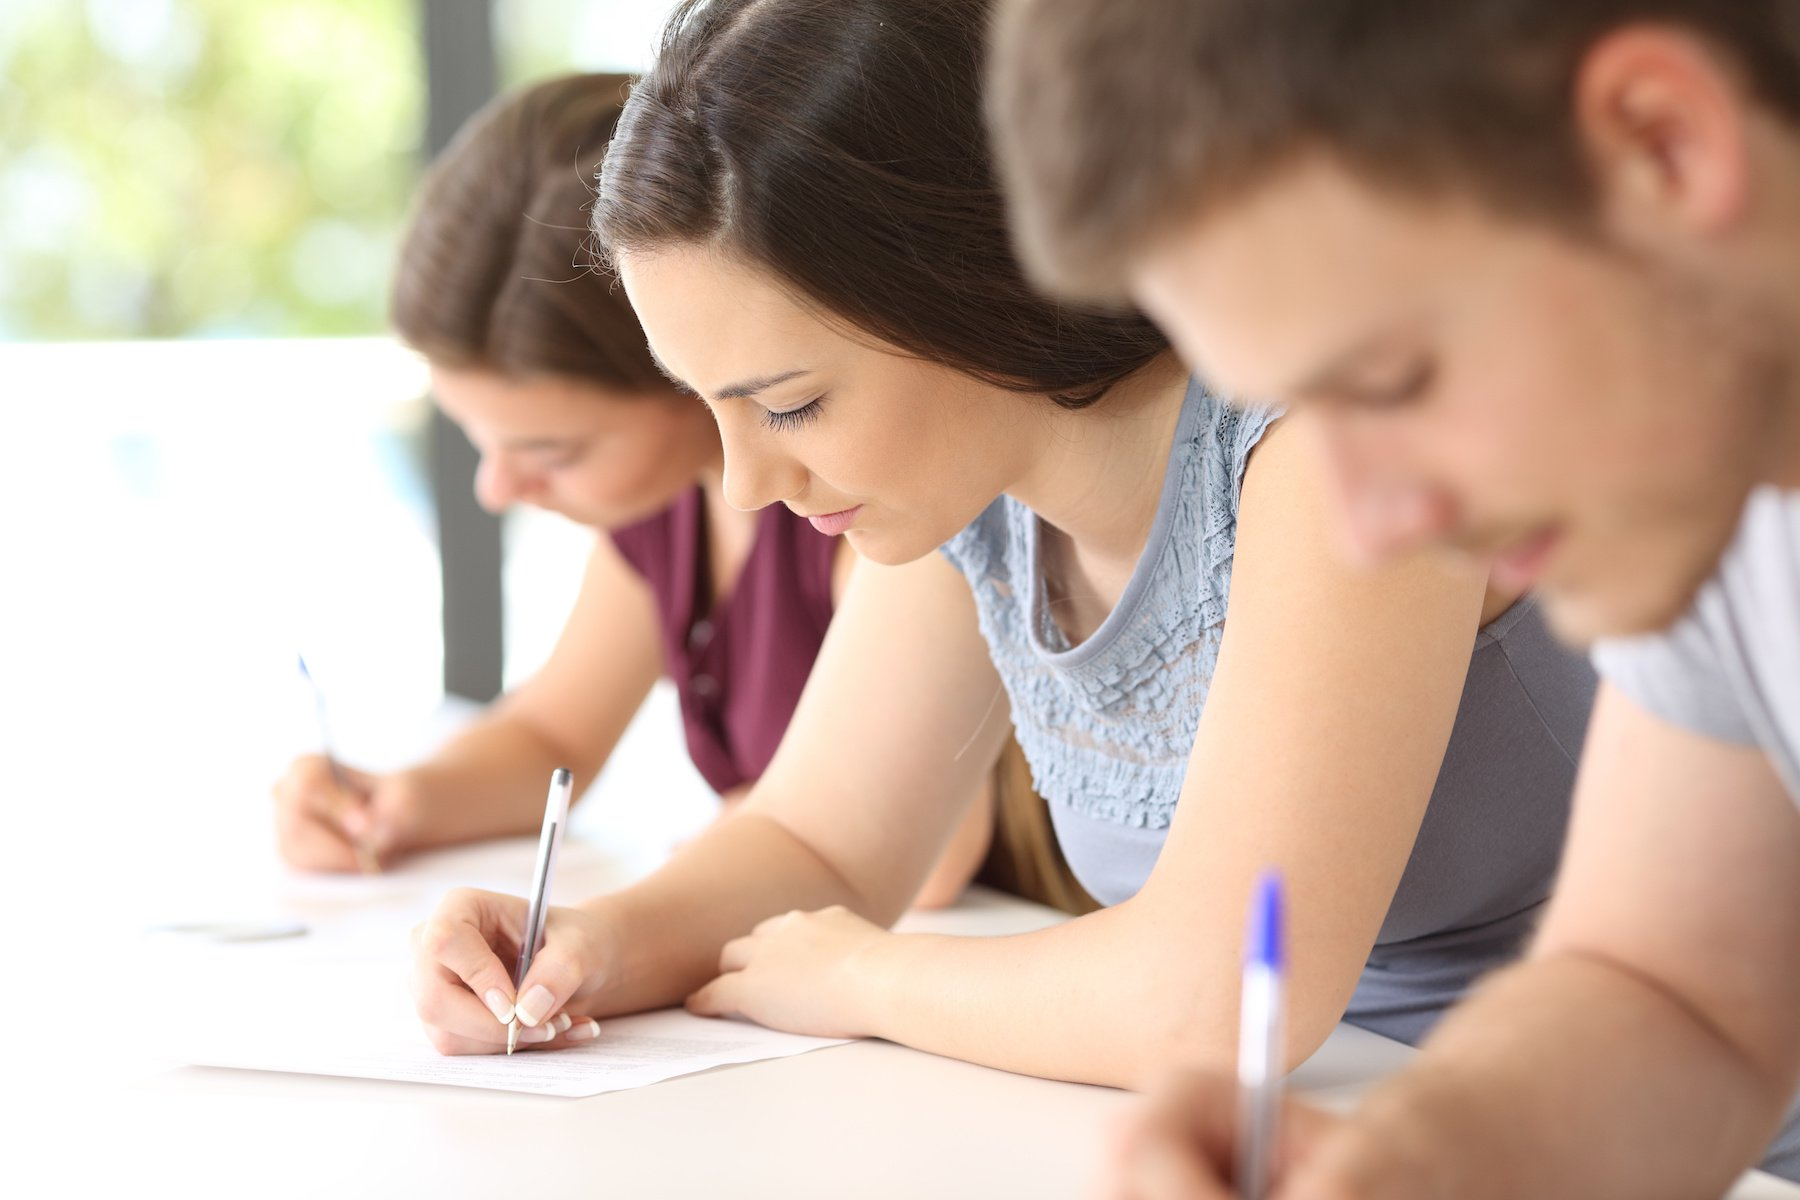 This State Once Again Ranks Highest on AP Test Results